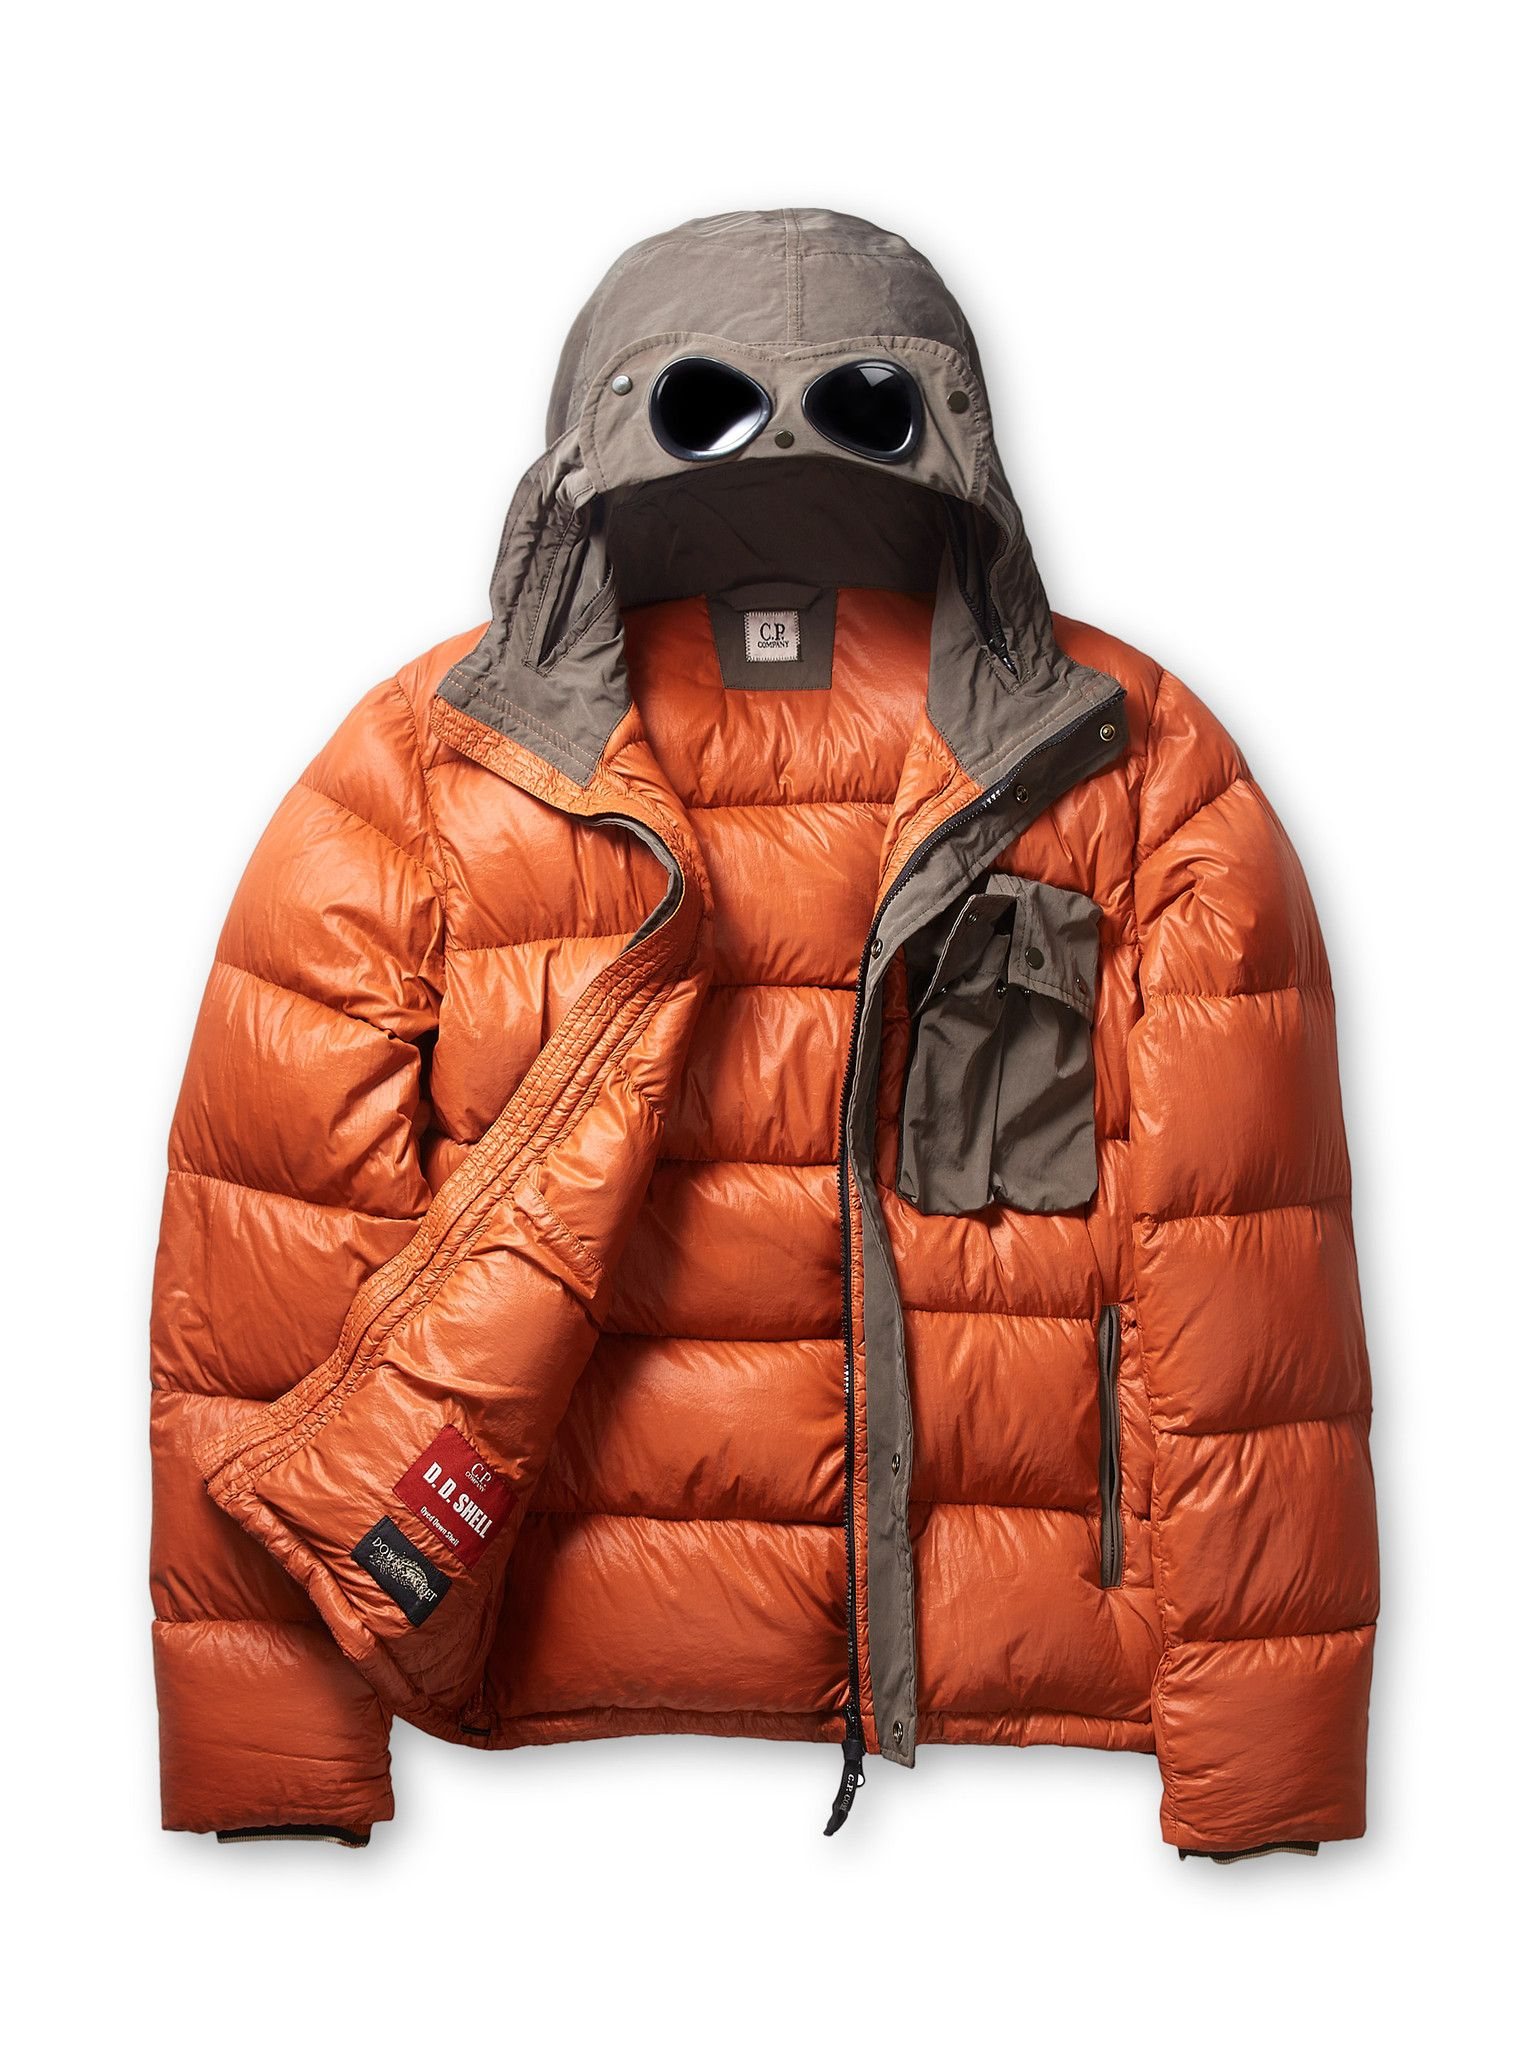 e265fd7b2 C.P. Company D.D. Shell Padded Contrast Goggle Jacket in Orange ...